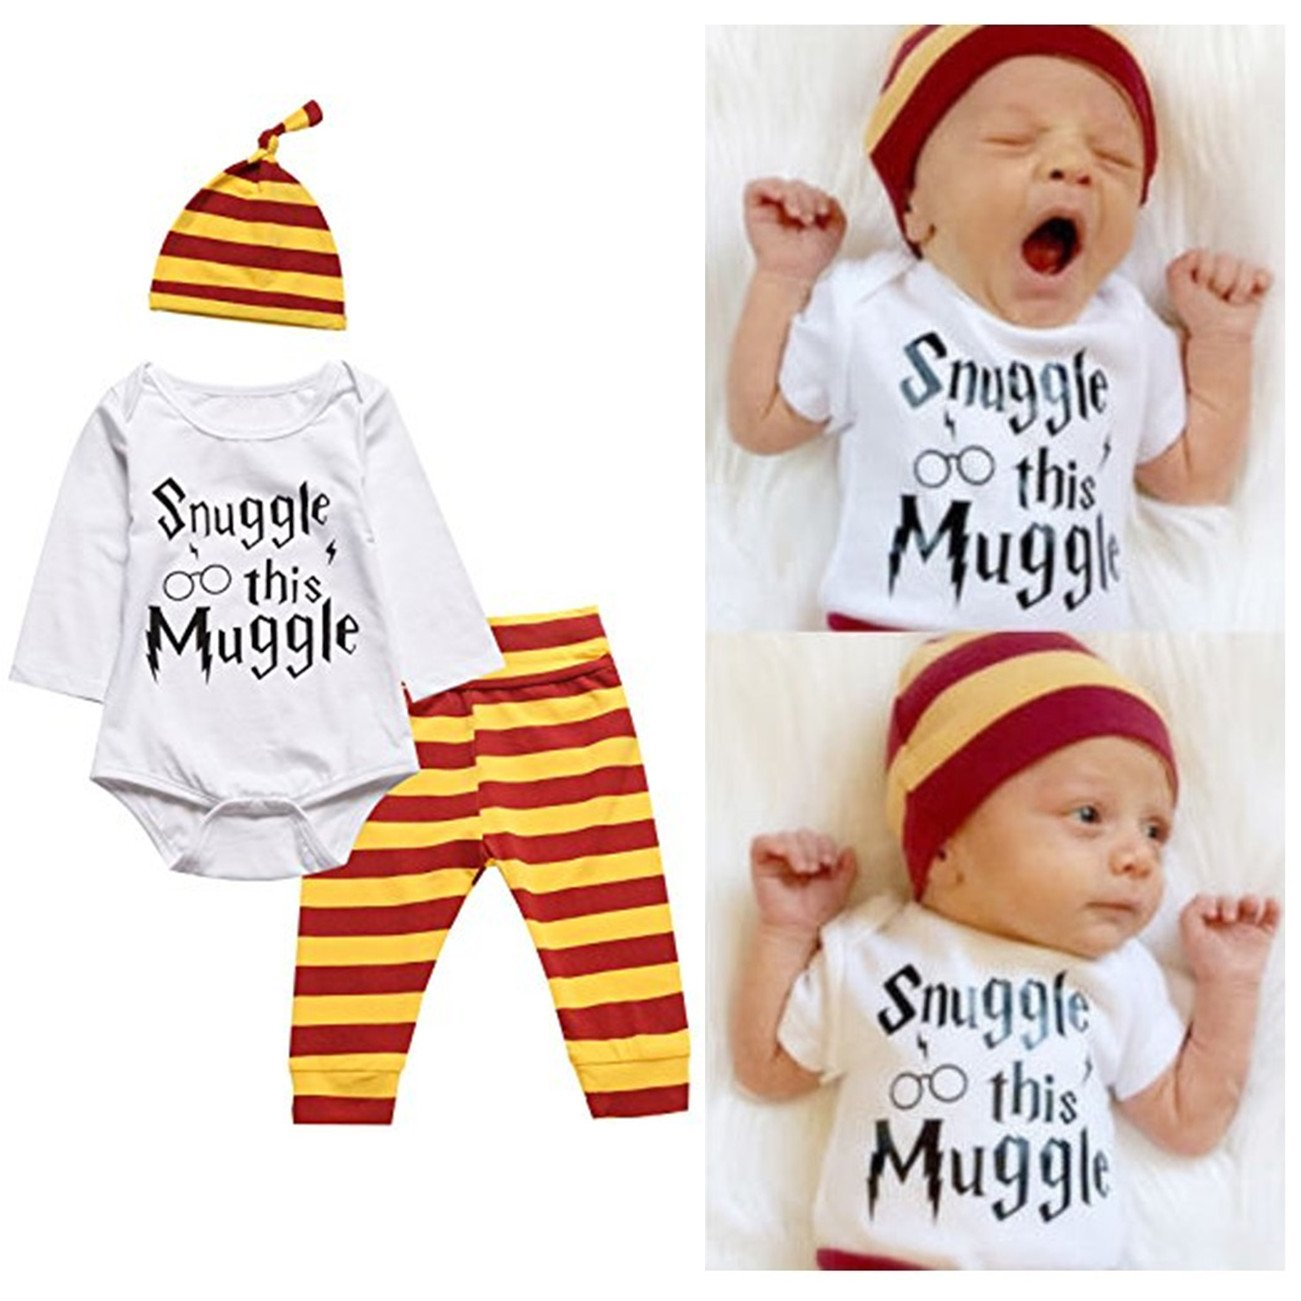 Snuggle this Muggle Baby Boys Girls Romper Pants Hat Outfit Set Clothes i-Auto Time